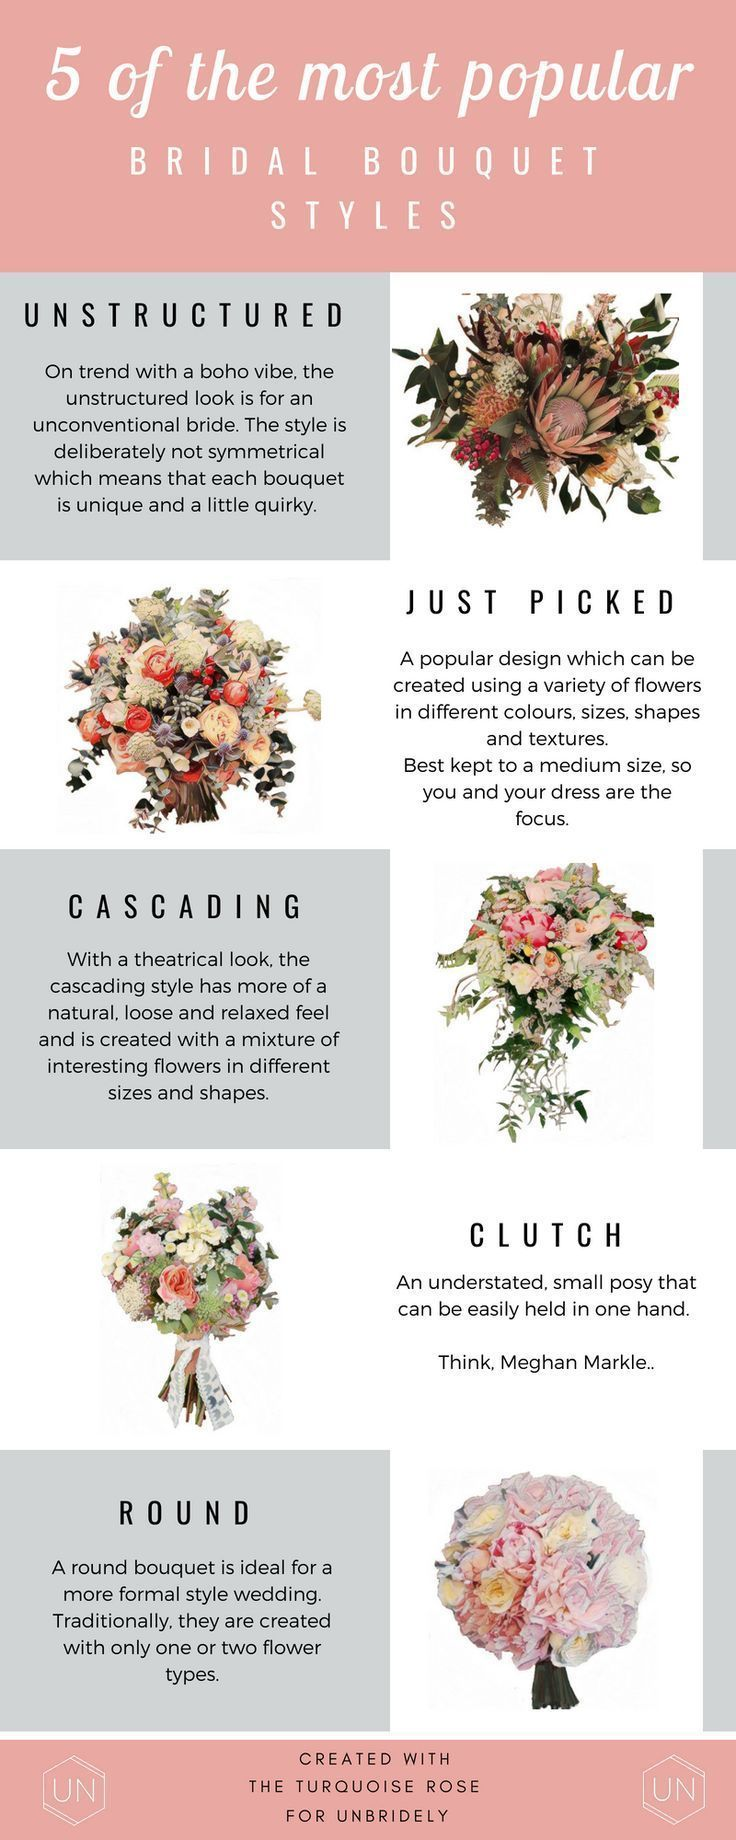 5 Of The Most Popular Bridal Bouquet Styles Explained Unbridely Hand Bouquet Wedding Bridal Bouquet Styles Diy Wedding Bouquet